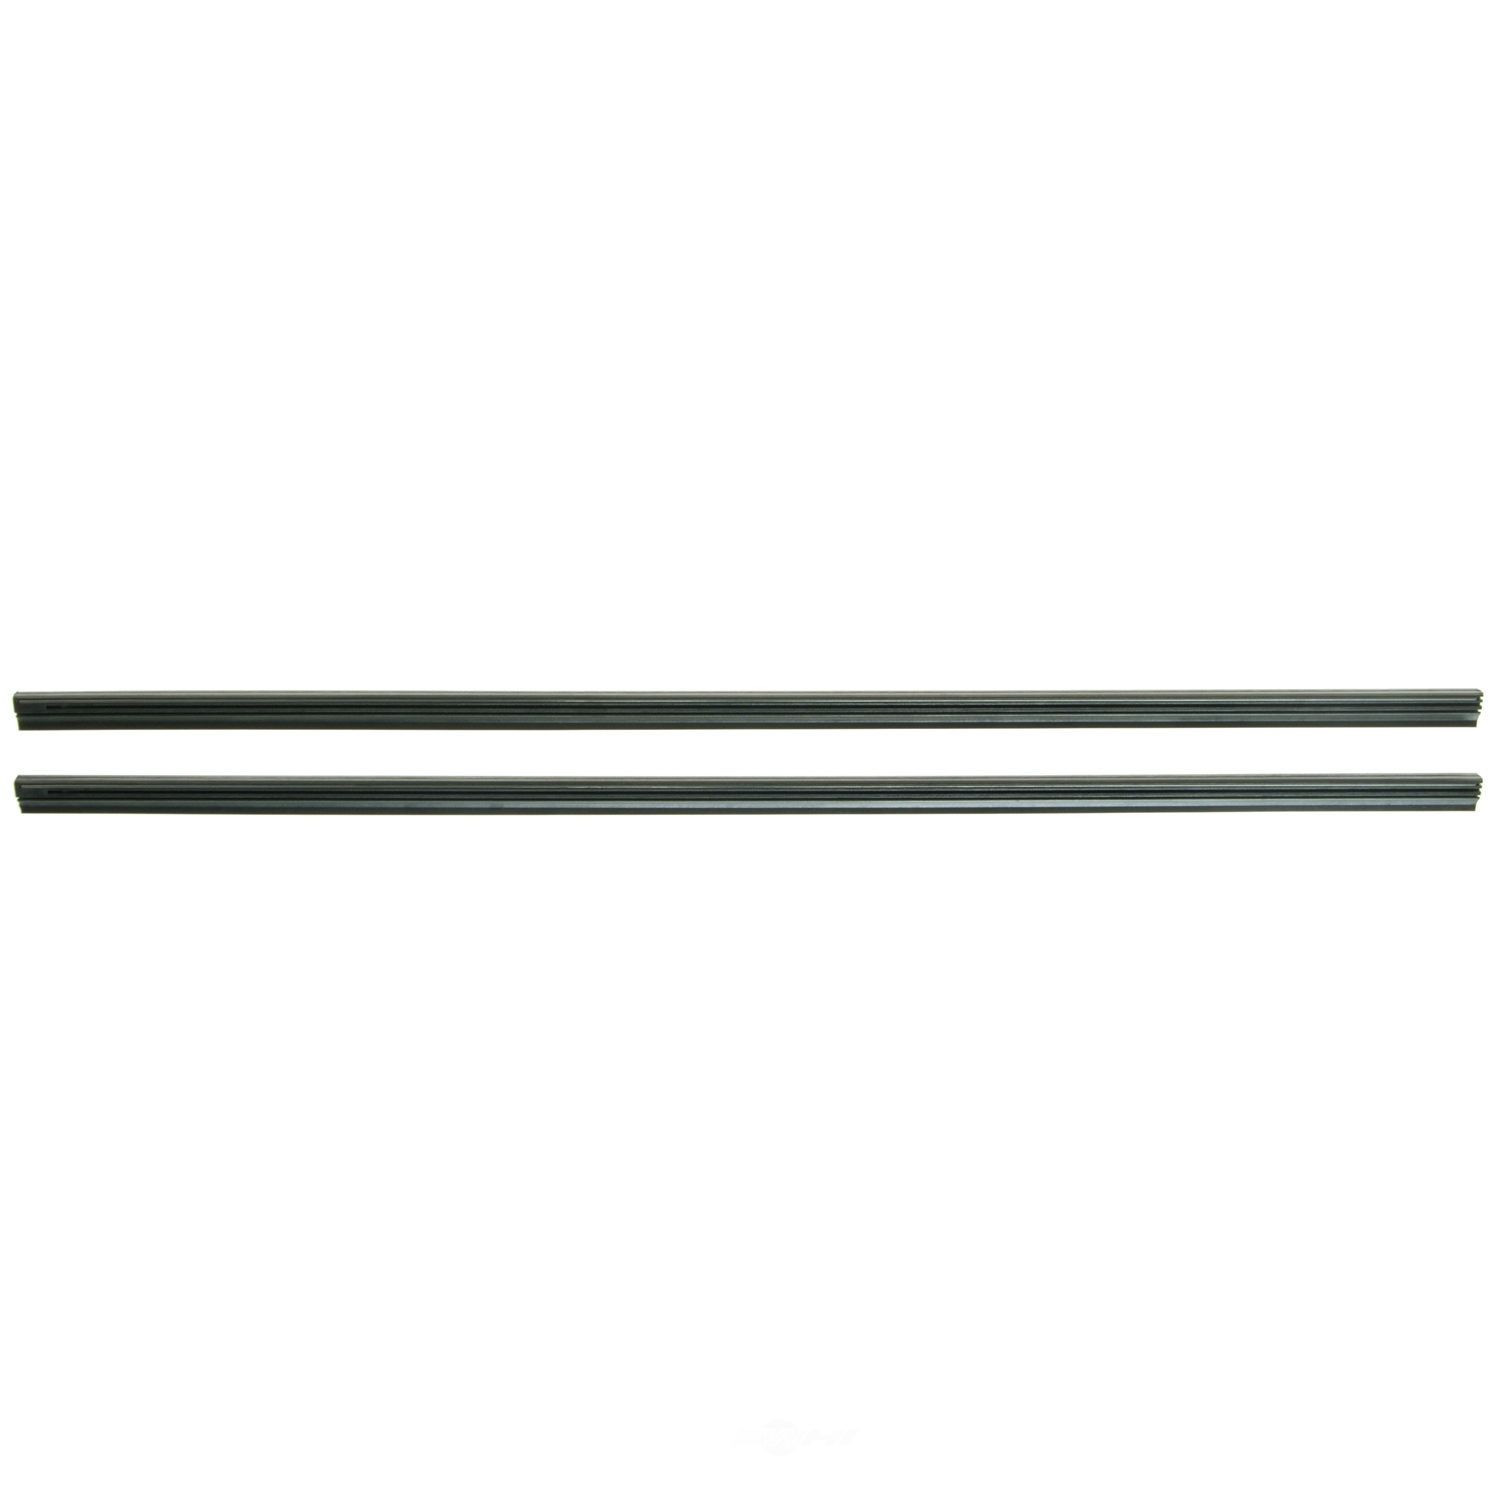 ANCO WIPER PRODUCTS - Stainless Steel Series Refills - ANC 19-17